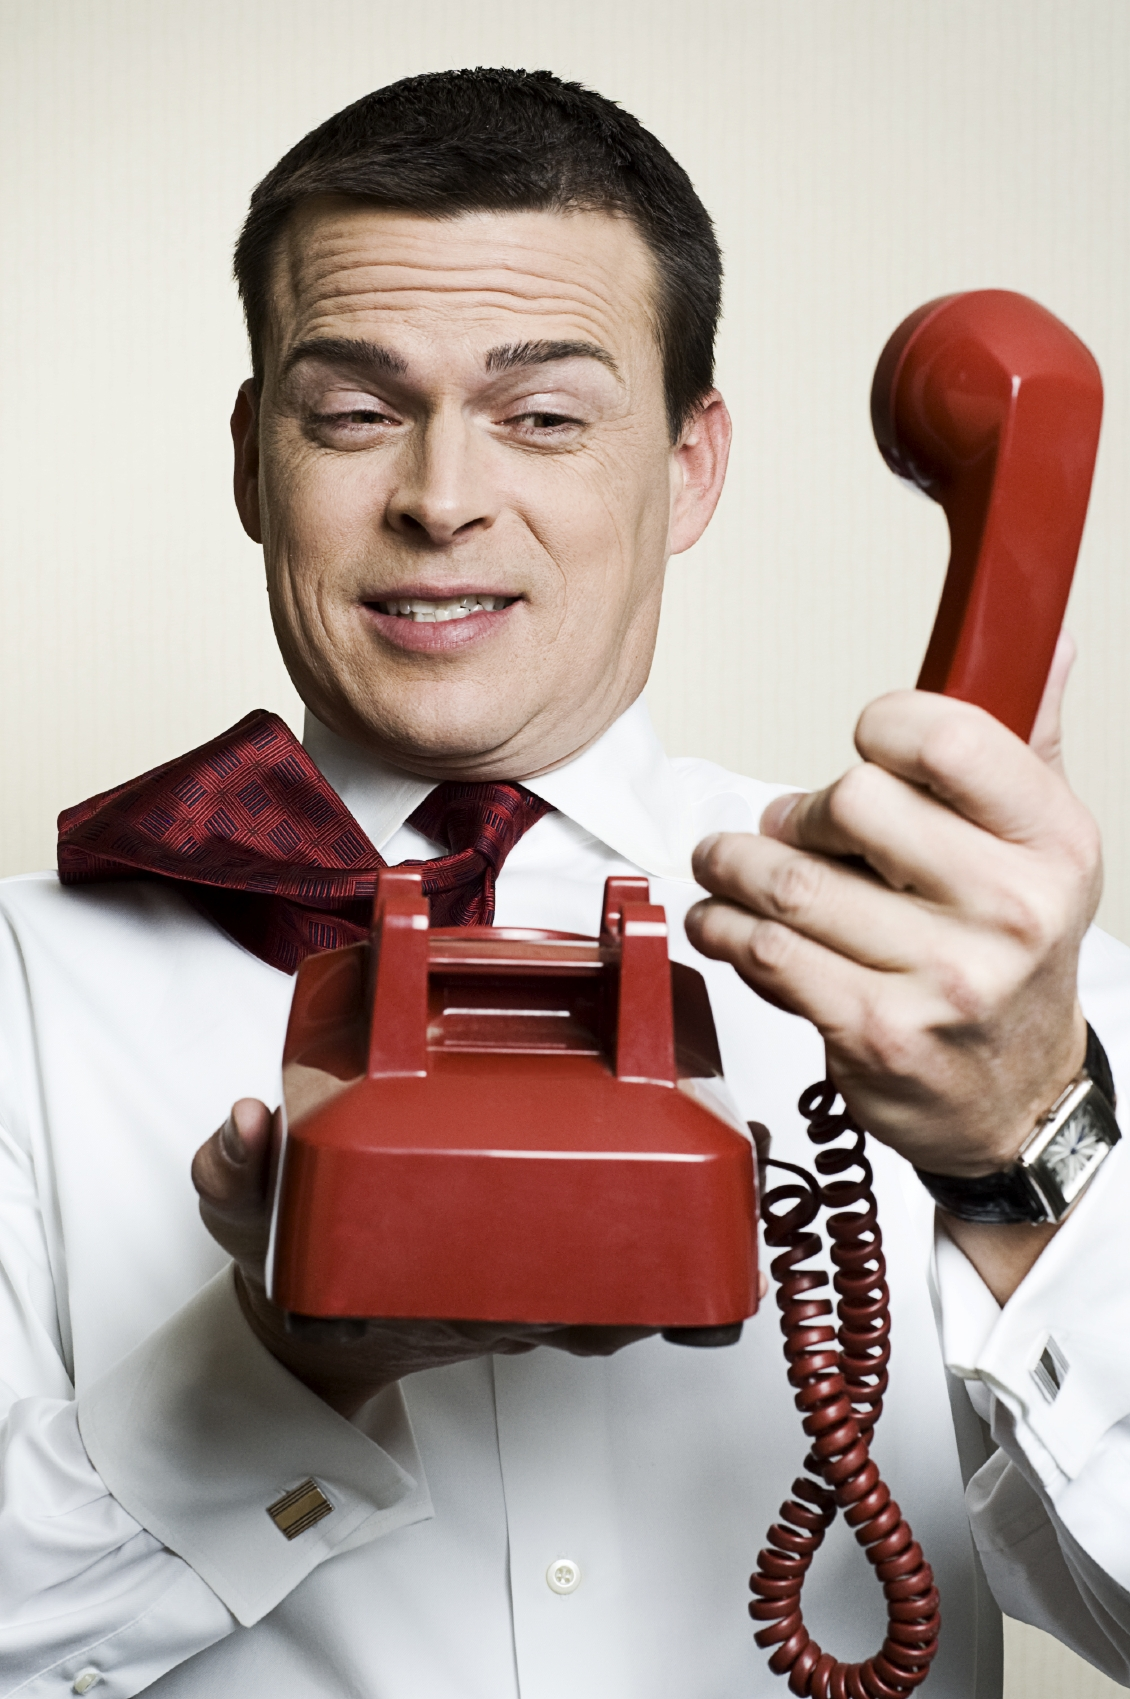 telephone from istock for opt in report